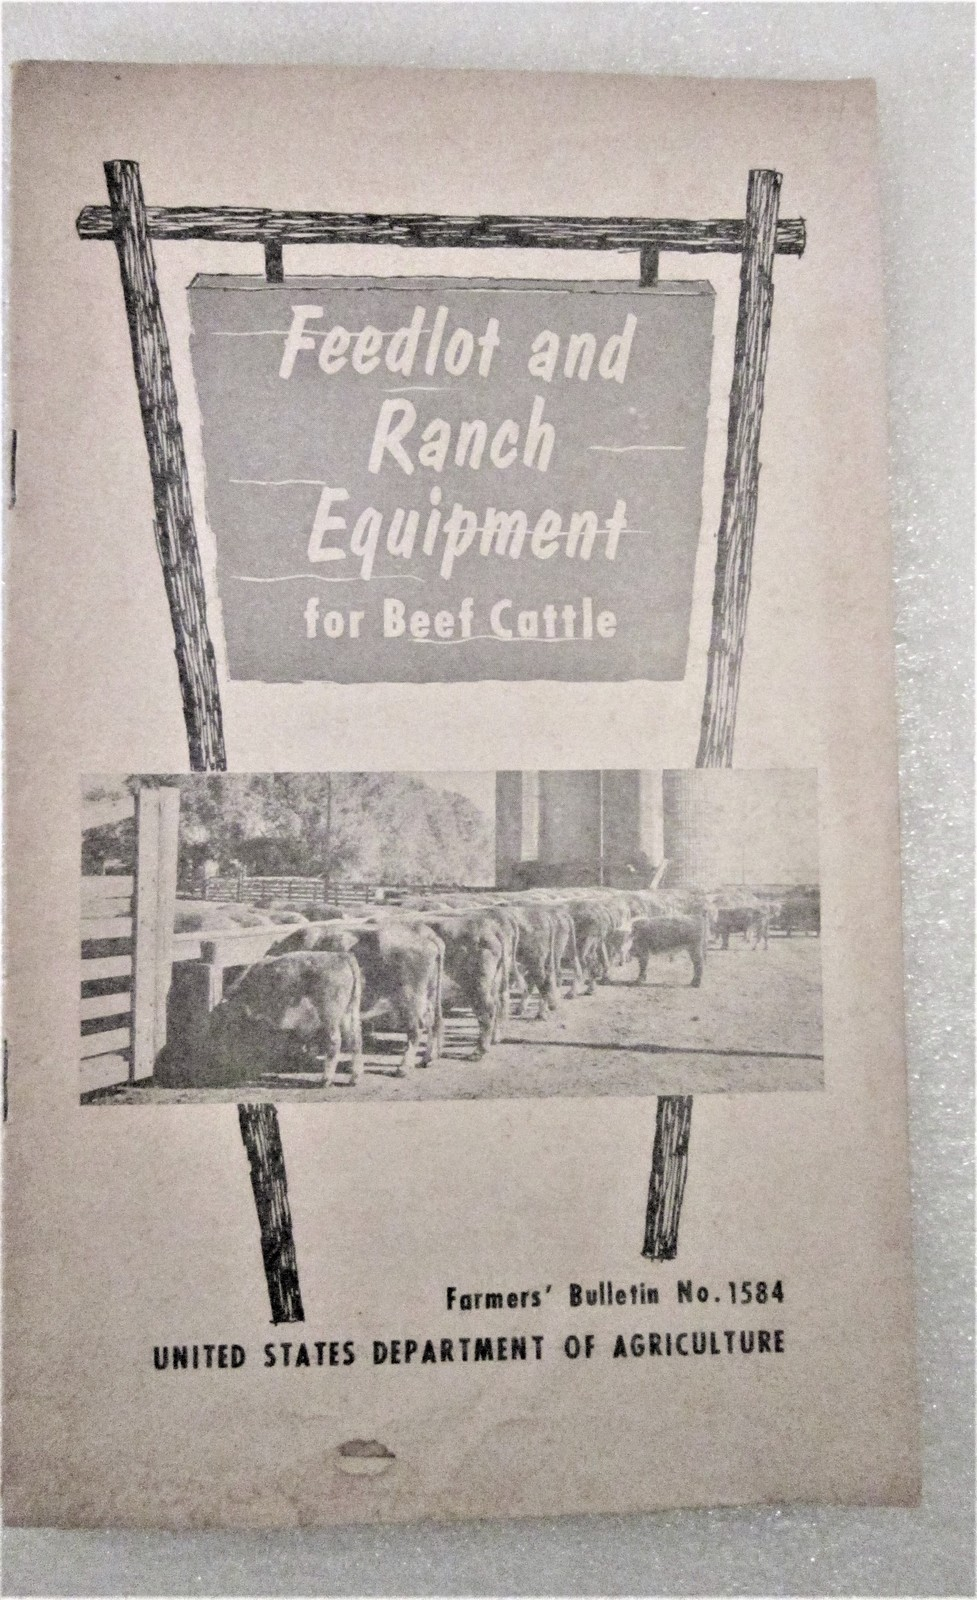 Primary image for Feedlot and Ranch Equipment for Feed Cattle 1963 Farmers Bulletin